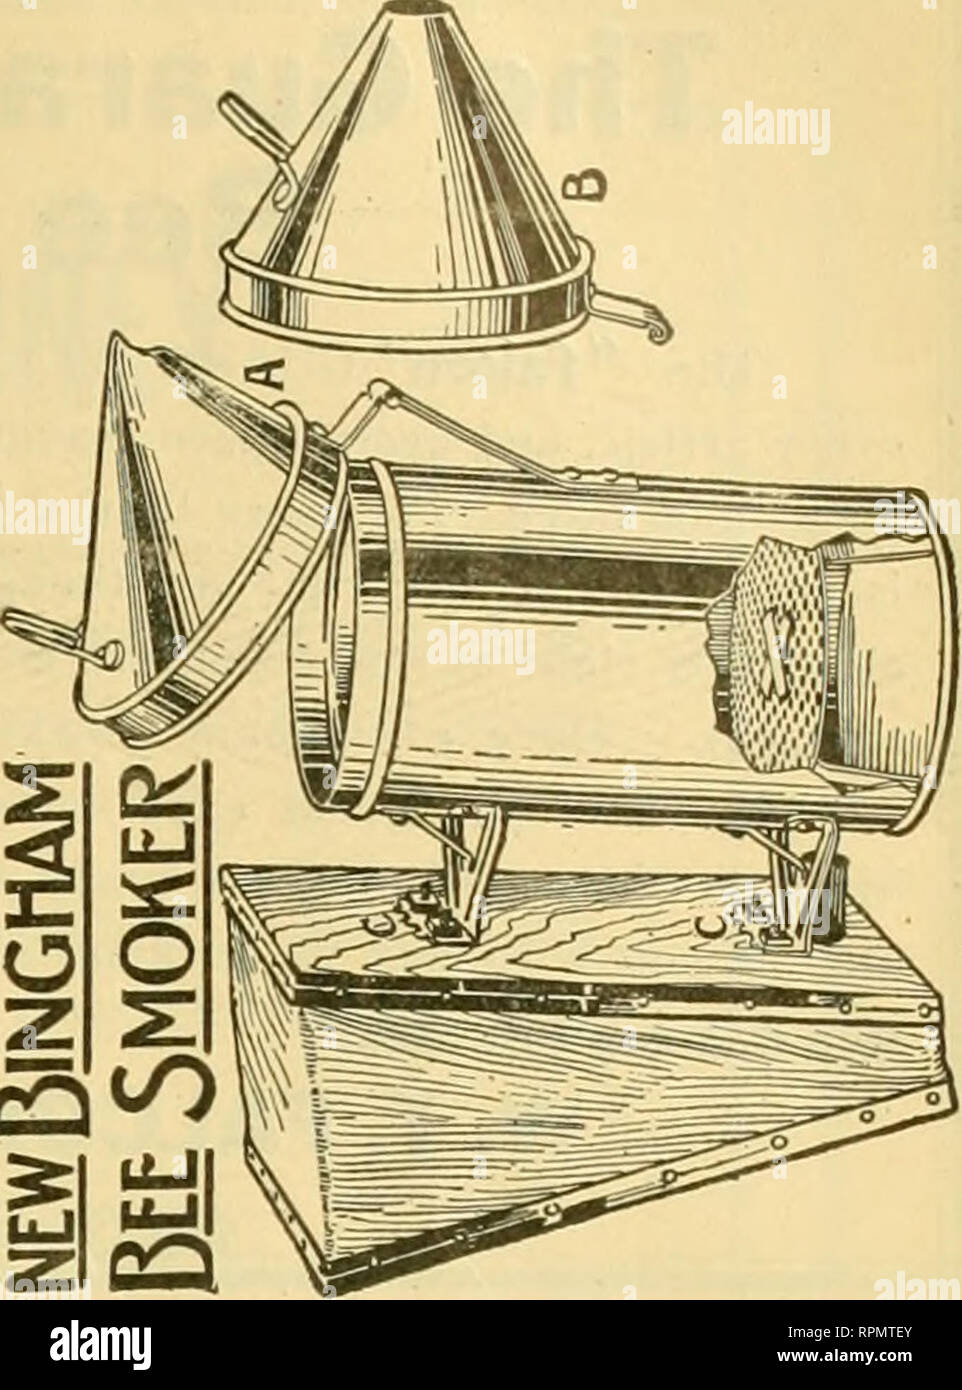 . American bee journal. Bee culture; Bees. PATENTED Wright's Frame-Wiring Device Most rapid in use. Saves cost of machine i one day. Tighter wires, no kinks, no sore ands. Price, $2.50, postpaid in U. S. A. G. W. Wright Company, Azusa, Calf. BUY THE FAMOUS DAVIS GOLDENS And get big yields from gentle bees. Write for Circular and Price List. BEN G. DAVIS, Spring Hill, Tennessee. NOTICE—Special Sale on Sections No. 1 Beeway $6.00, No. 2 $5.50 per 1,000 No. 1 Plain $5.75, No. 2 $5.25 per 1,000 All other supplies at a reduced price. Get your orders in when you see this. The Old Bee and Honey Man,  - Stock Image